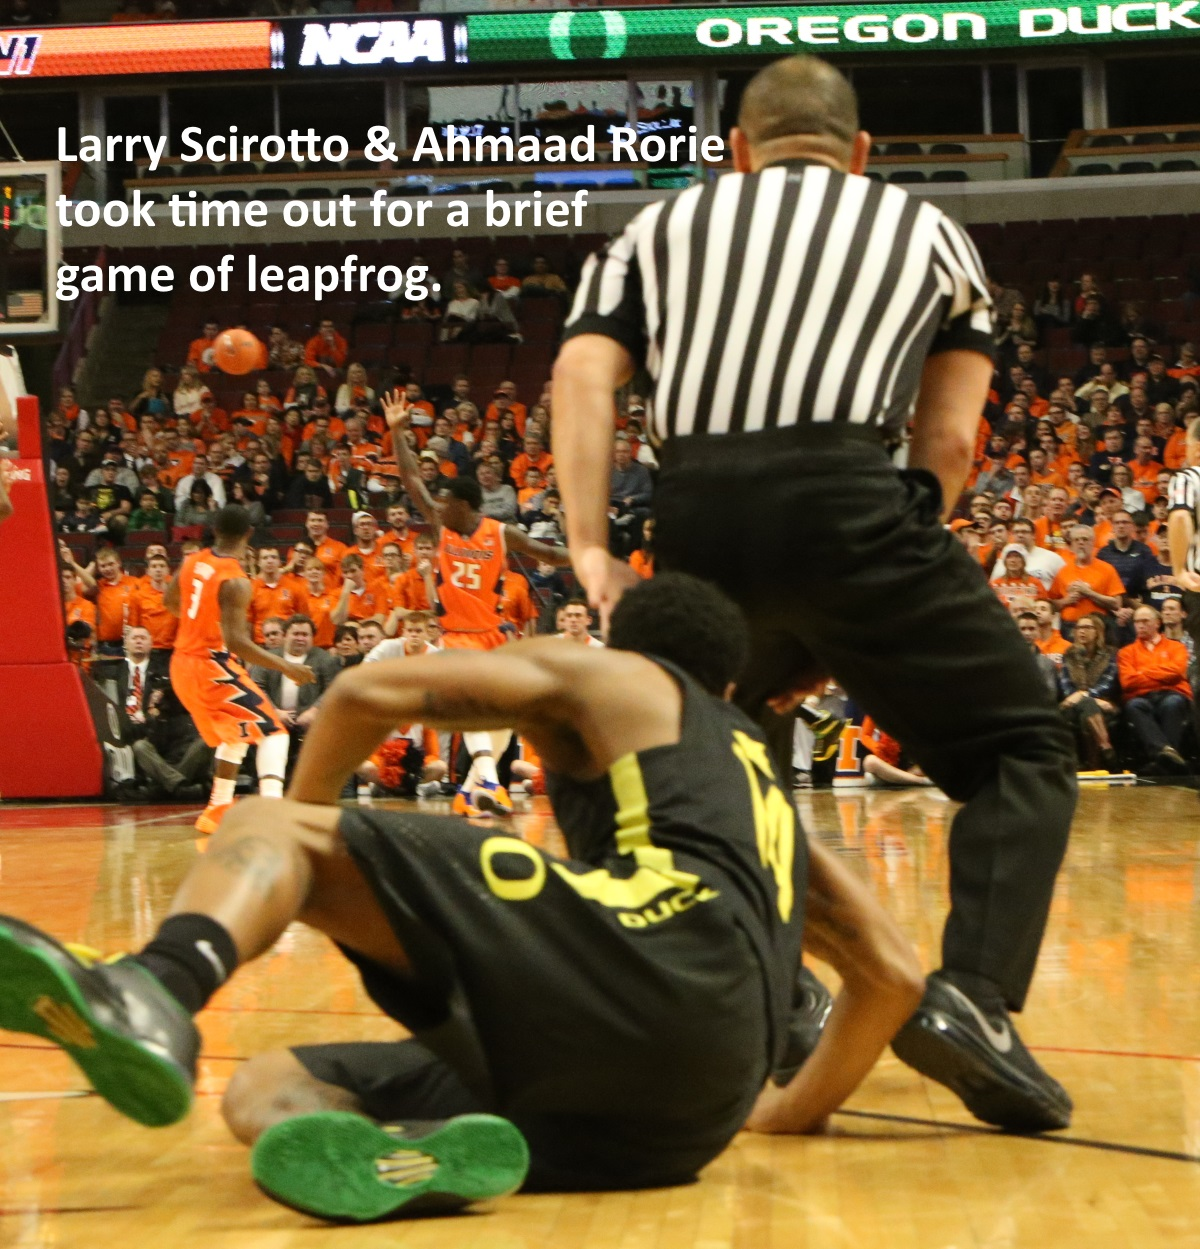 Larry Scirotto and Ahmaad Rorie leapfrog